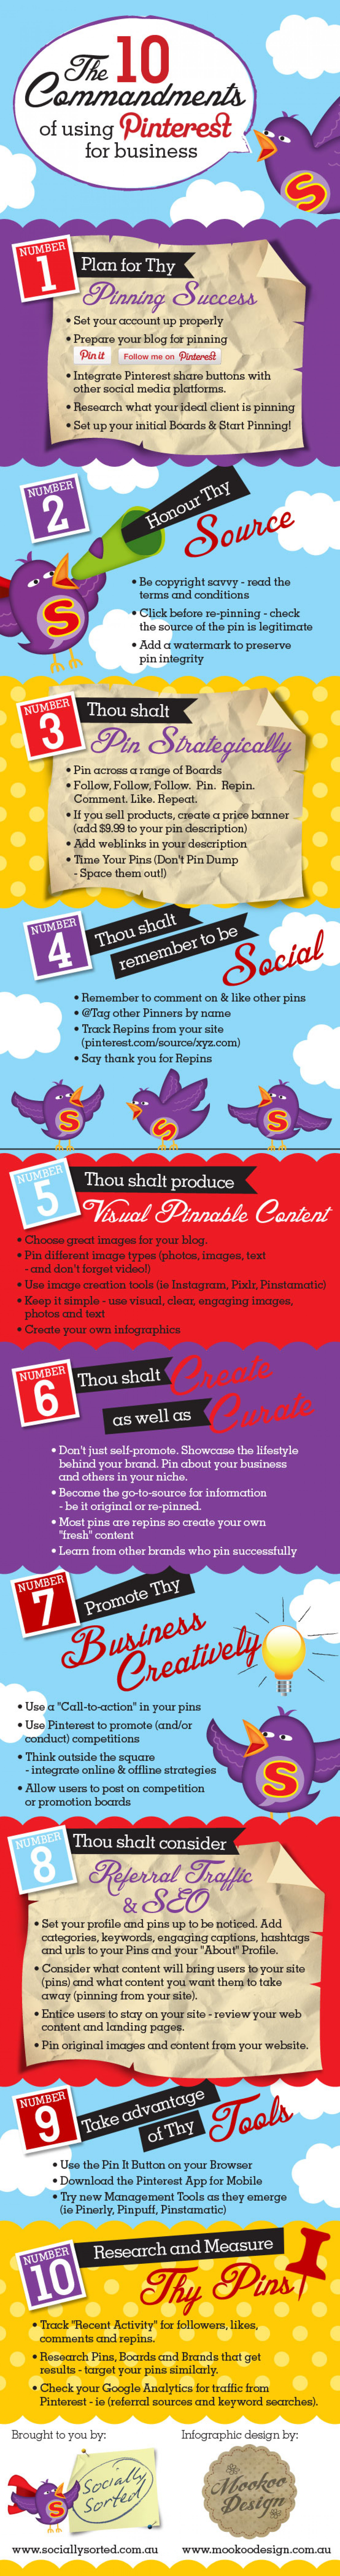 The 10 Commandments of using Pinterest for Business  Infographic